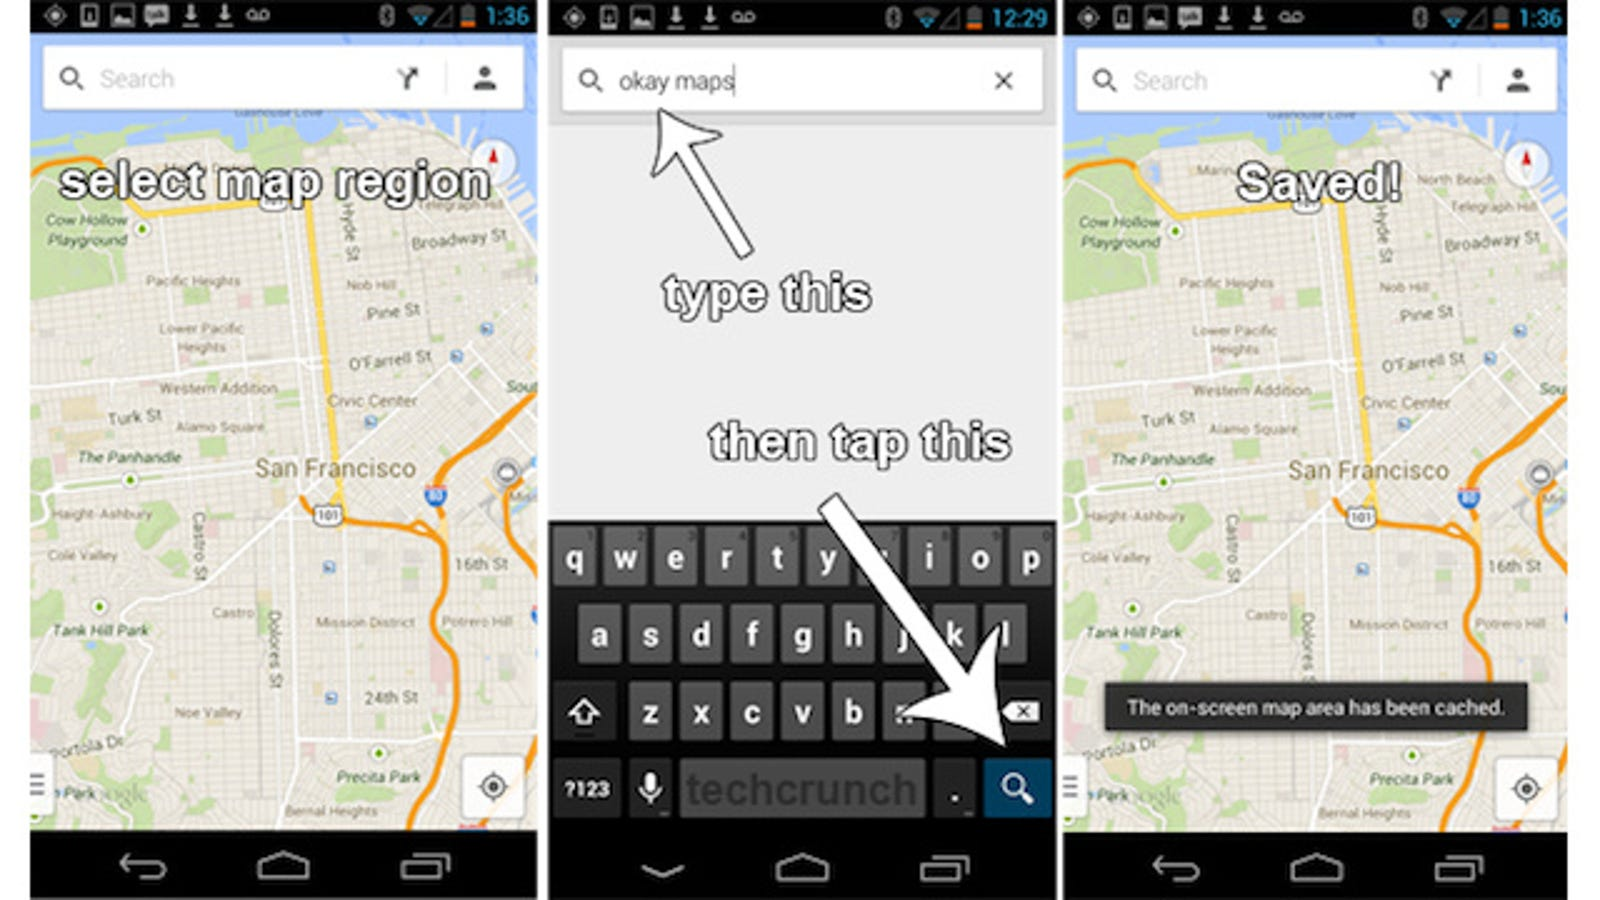 How to Cache Offline Maps in the New Google Maps for Android Save Maps In Google on gppgle maps, googie maps, gogole maps, search maps, amazon fire phone maps, aerial maps, googlr maps, online maps, goolge maps, stanford university maps, microsoft maps, ipad maps, aeronautical maps, msn maps, android maps, topographic maps, iphone maps, road map usa states maps, bing maps, waze maps,